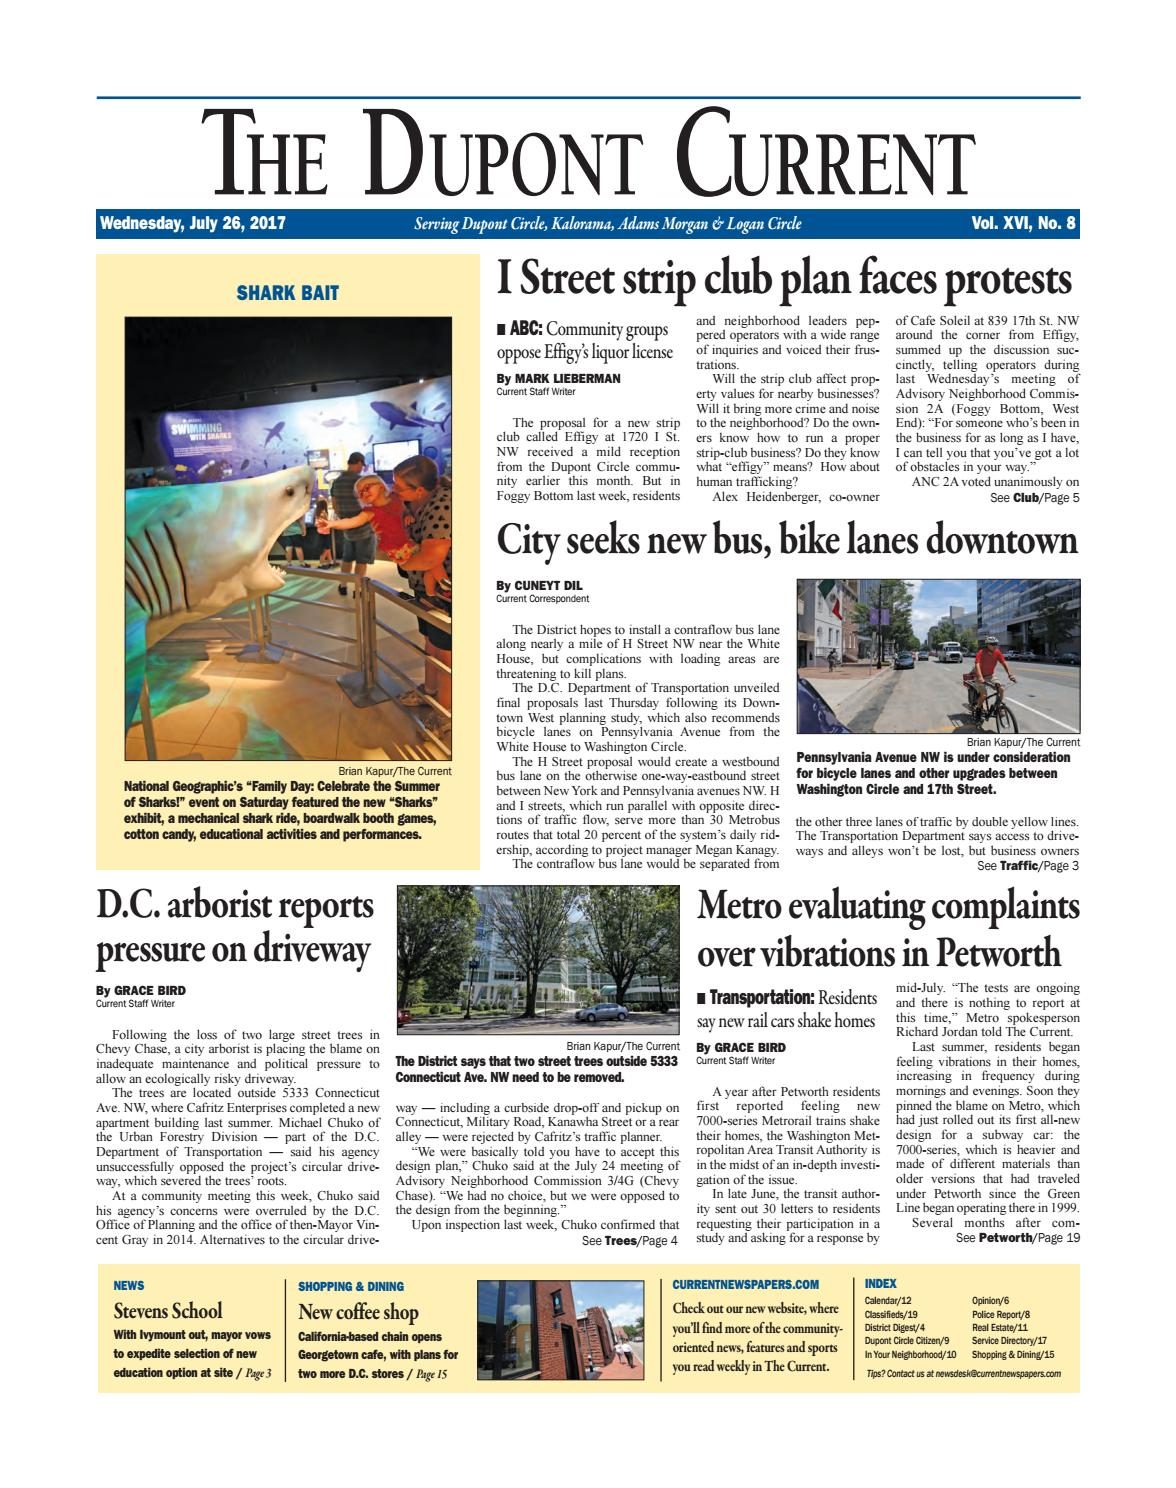 2edb4888d Dp 07 26 2017 by Current Newspapers - issuu